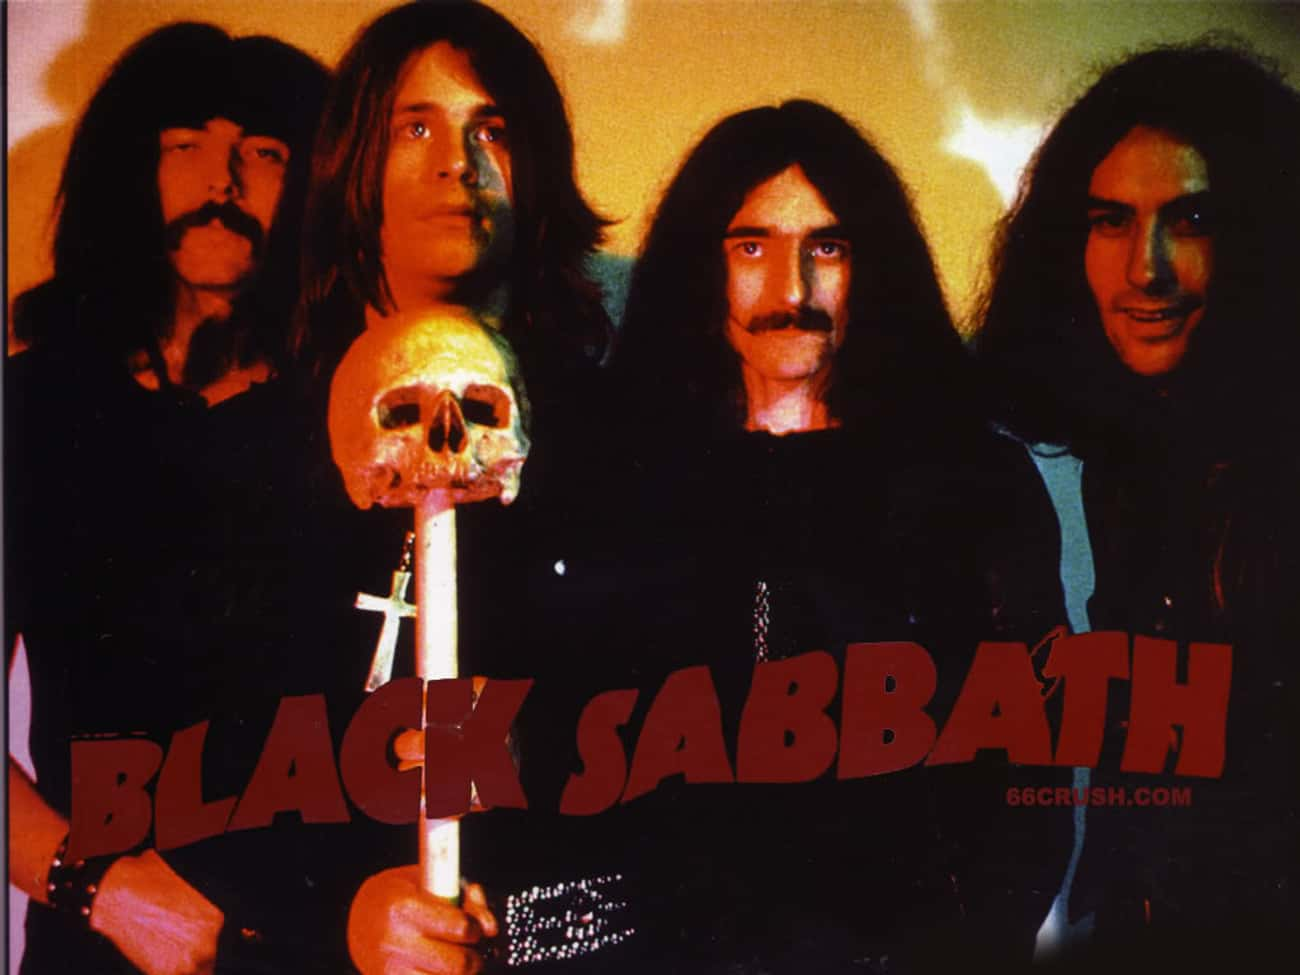 Black Sabbath is listed (or ranked) 3 on the list The Best Band Name Origin Stories